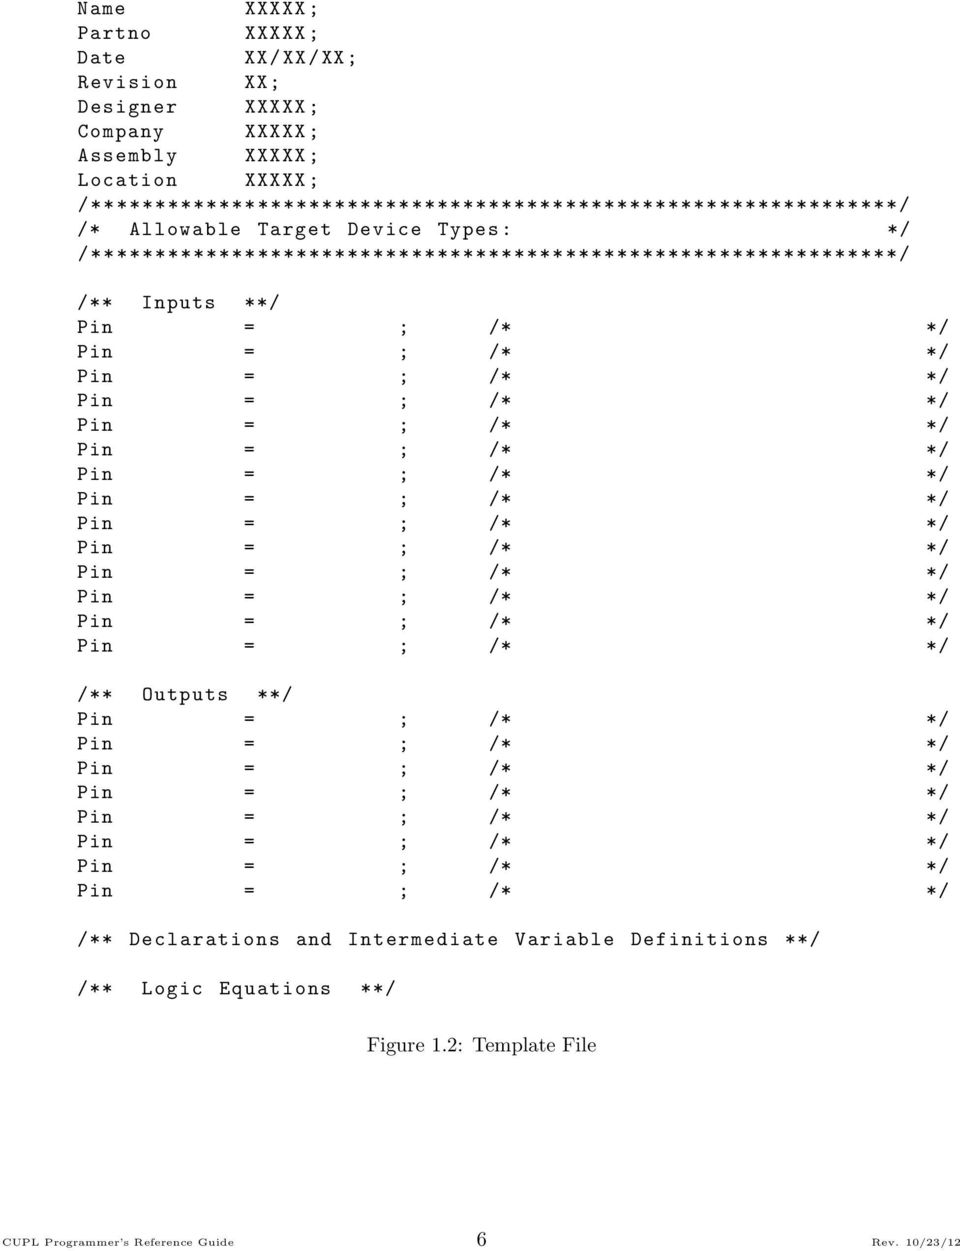 CUPL Programmer s Reference Guide - PDF